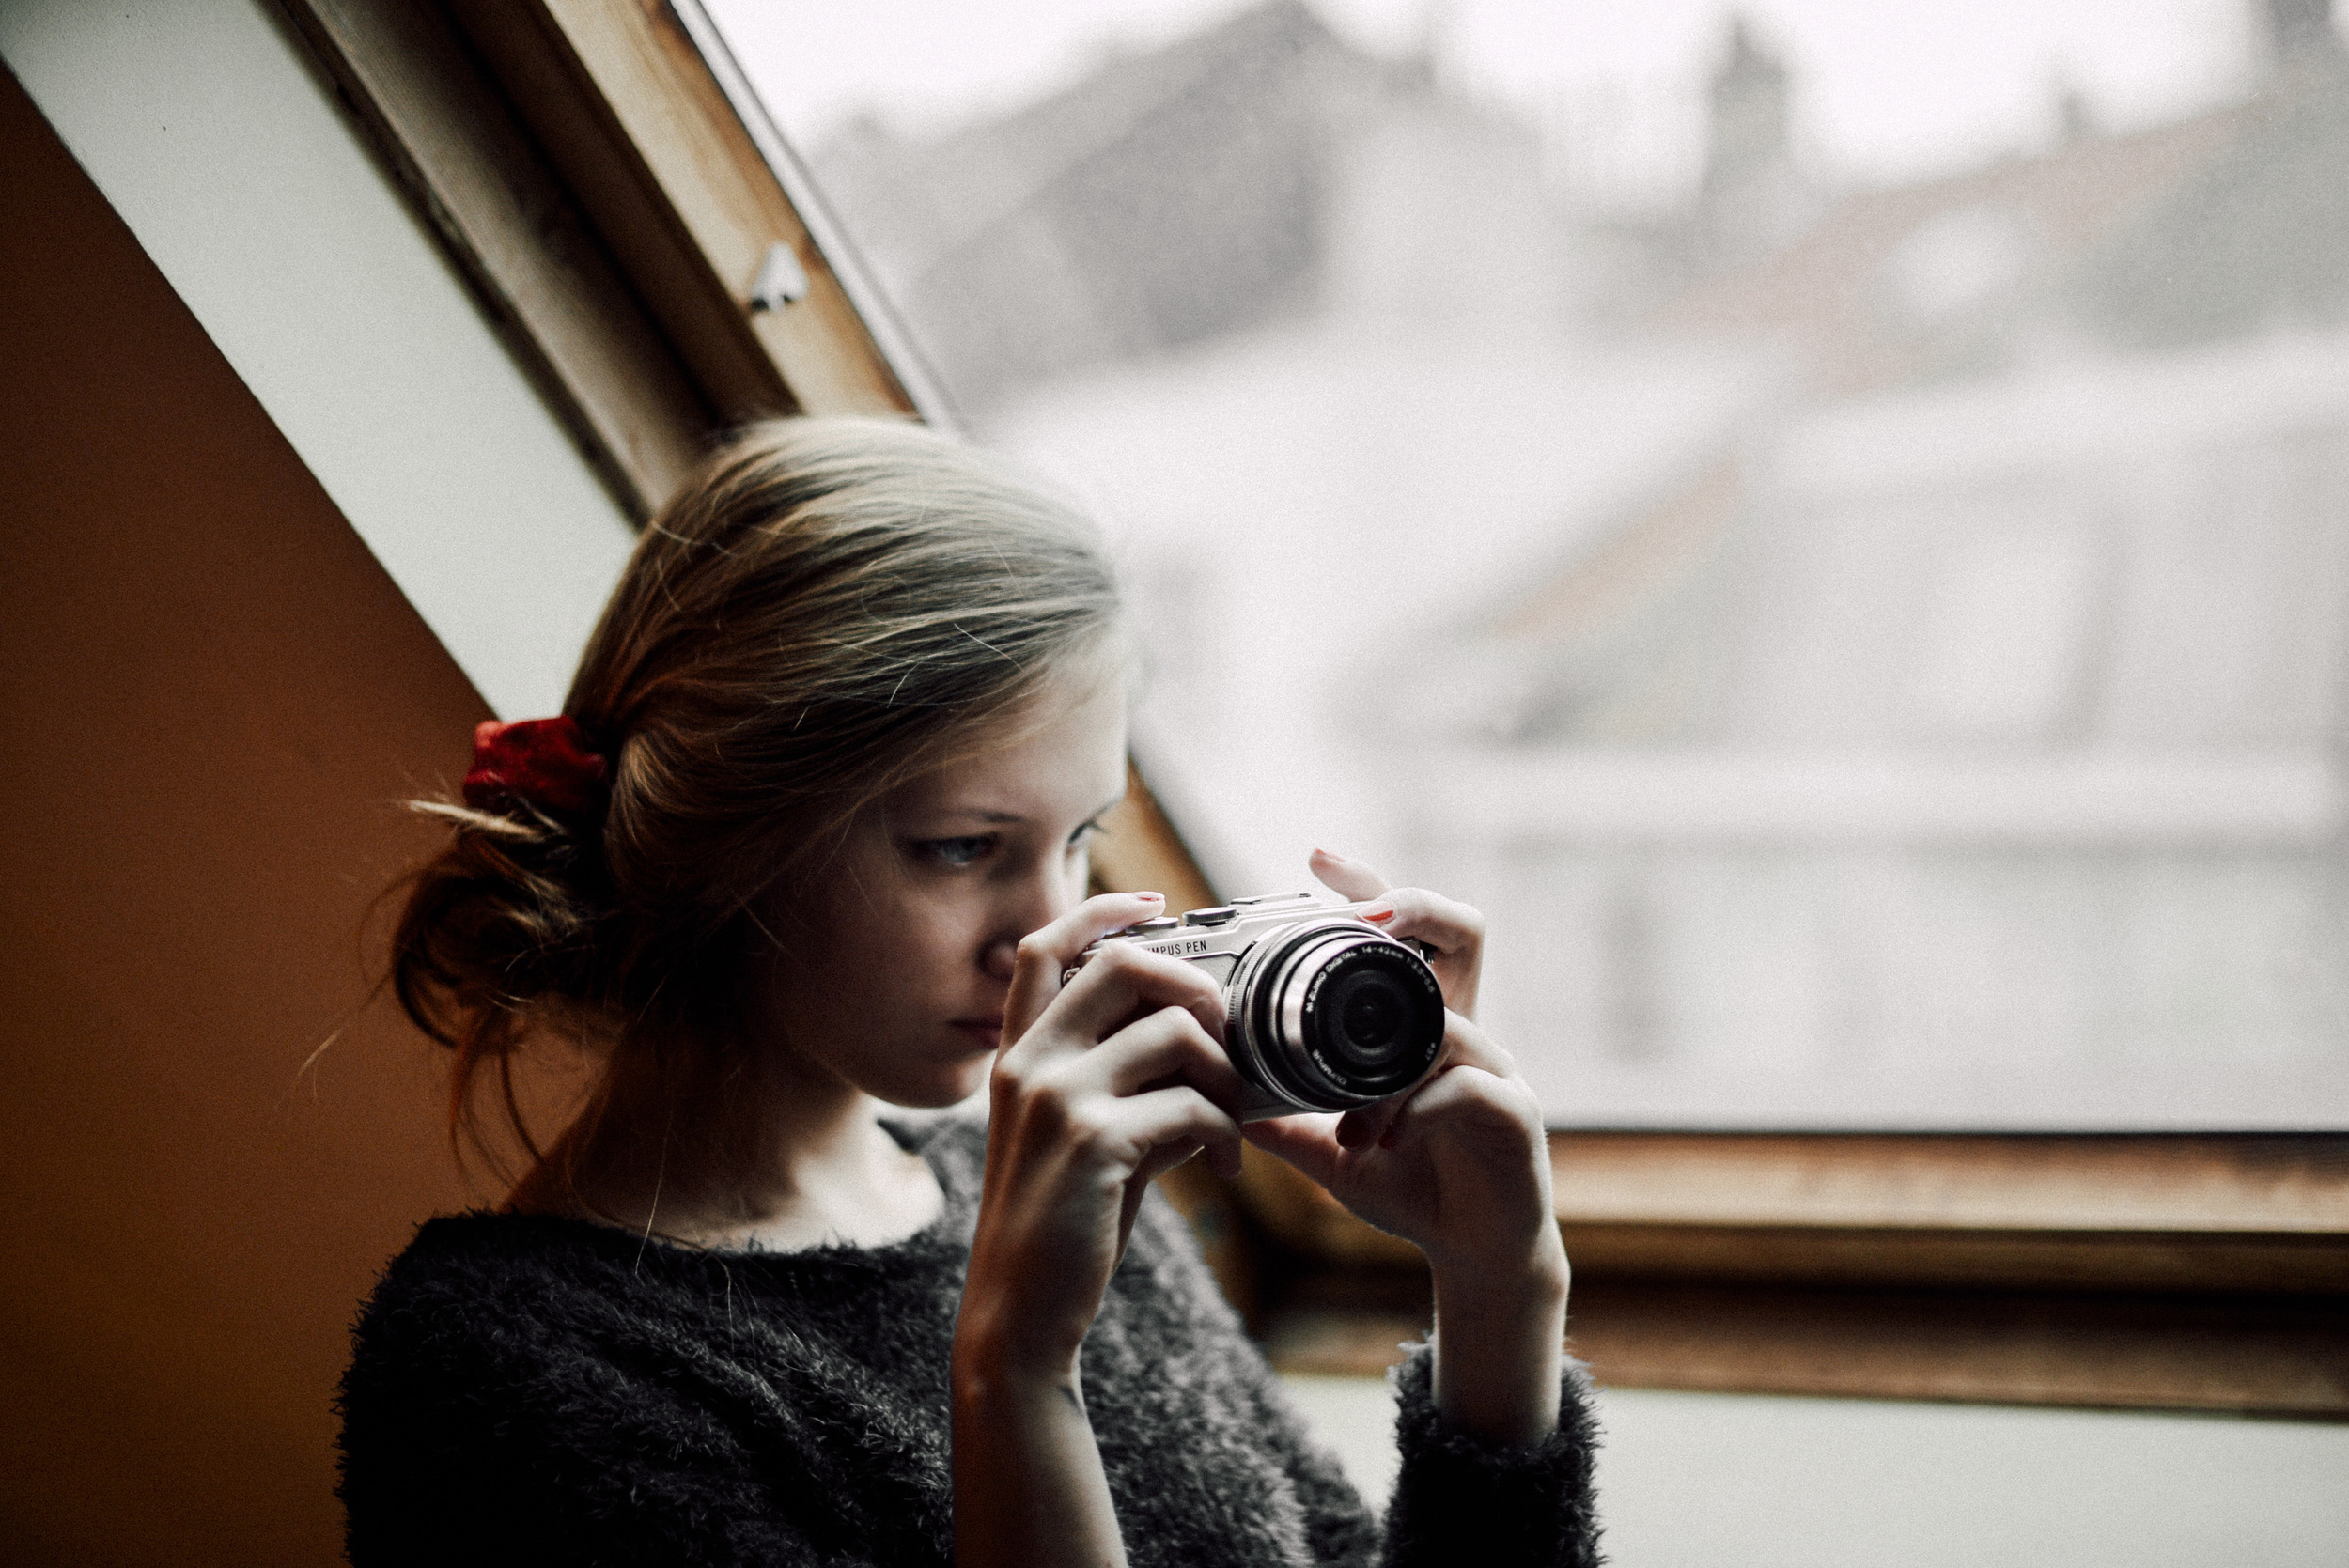 Olympus Pen EPL-7 fashion blogger review